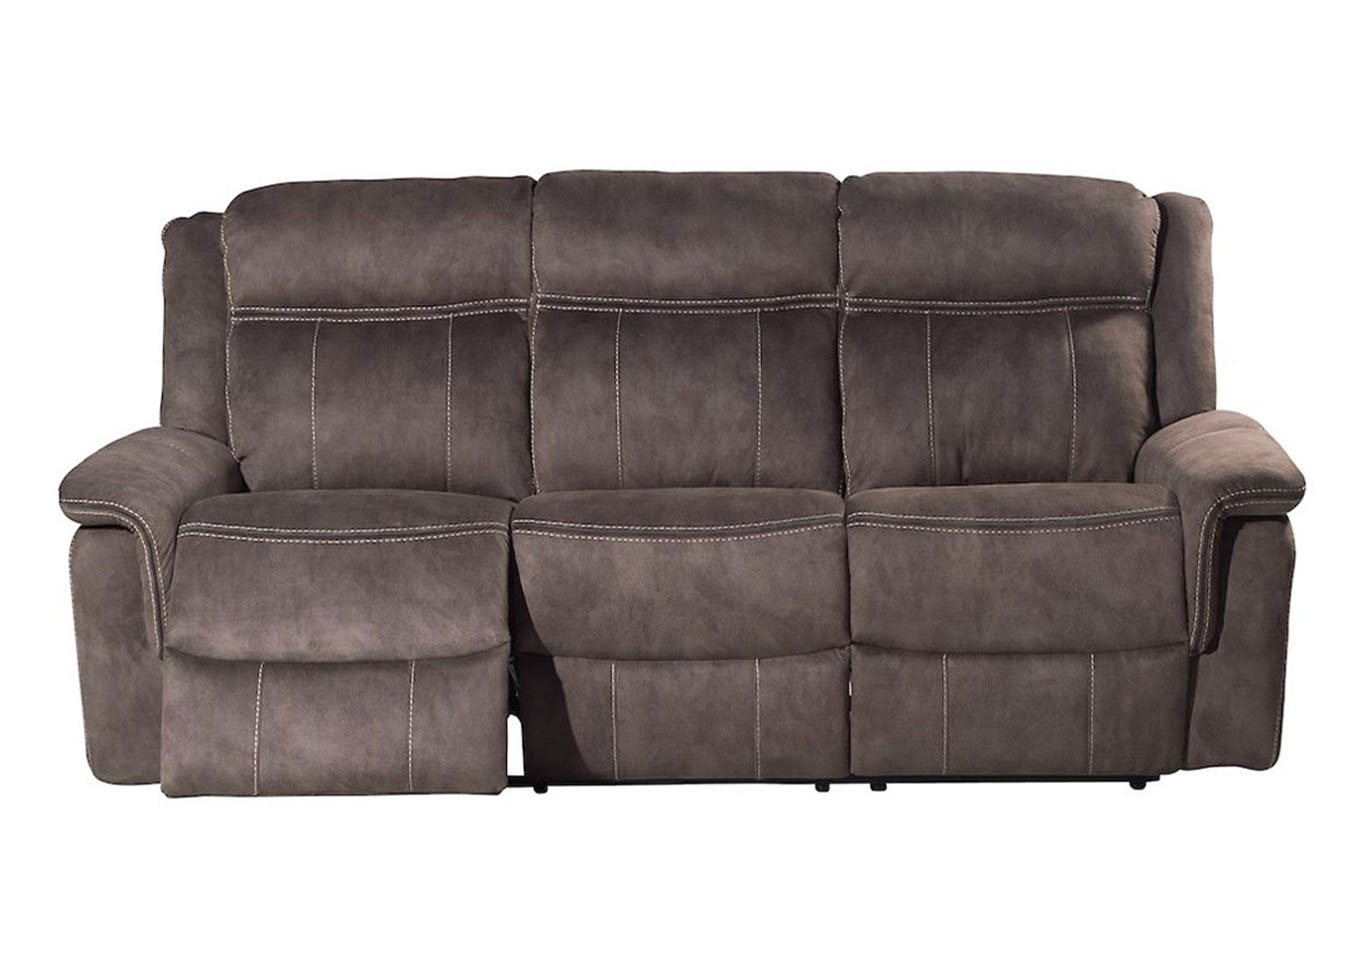 Kisner Dual Reclining Sofa and Dual Reclining Love Seat,Instore